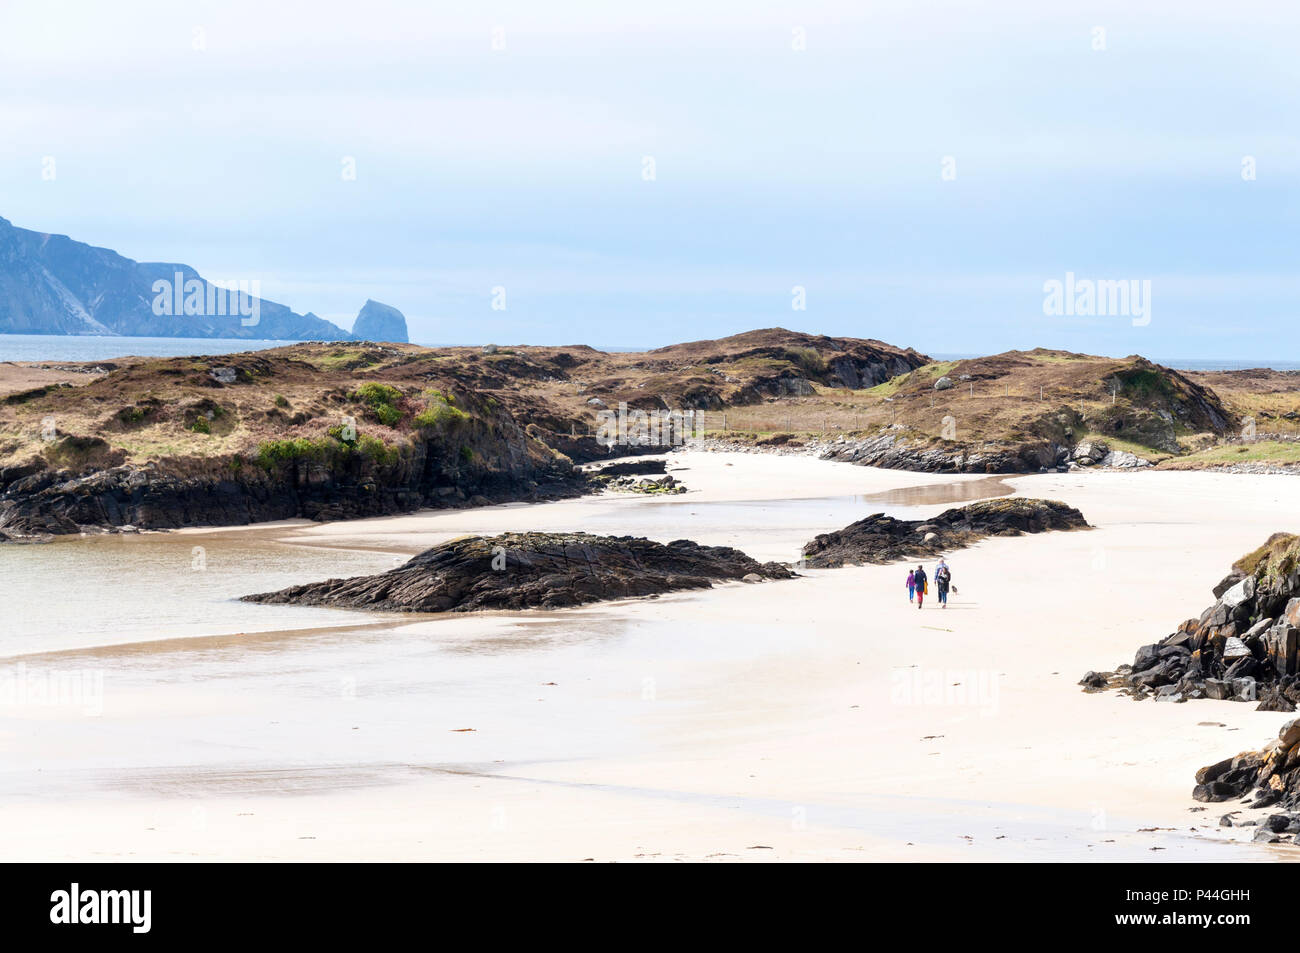 Family walking on beach at Rosbeg, County Donegal, Ireland - Stock Image